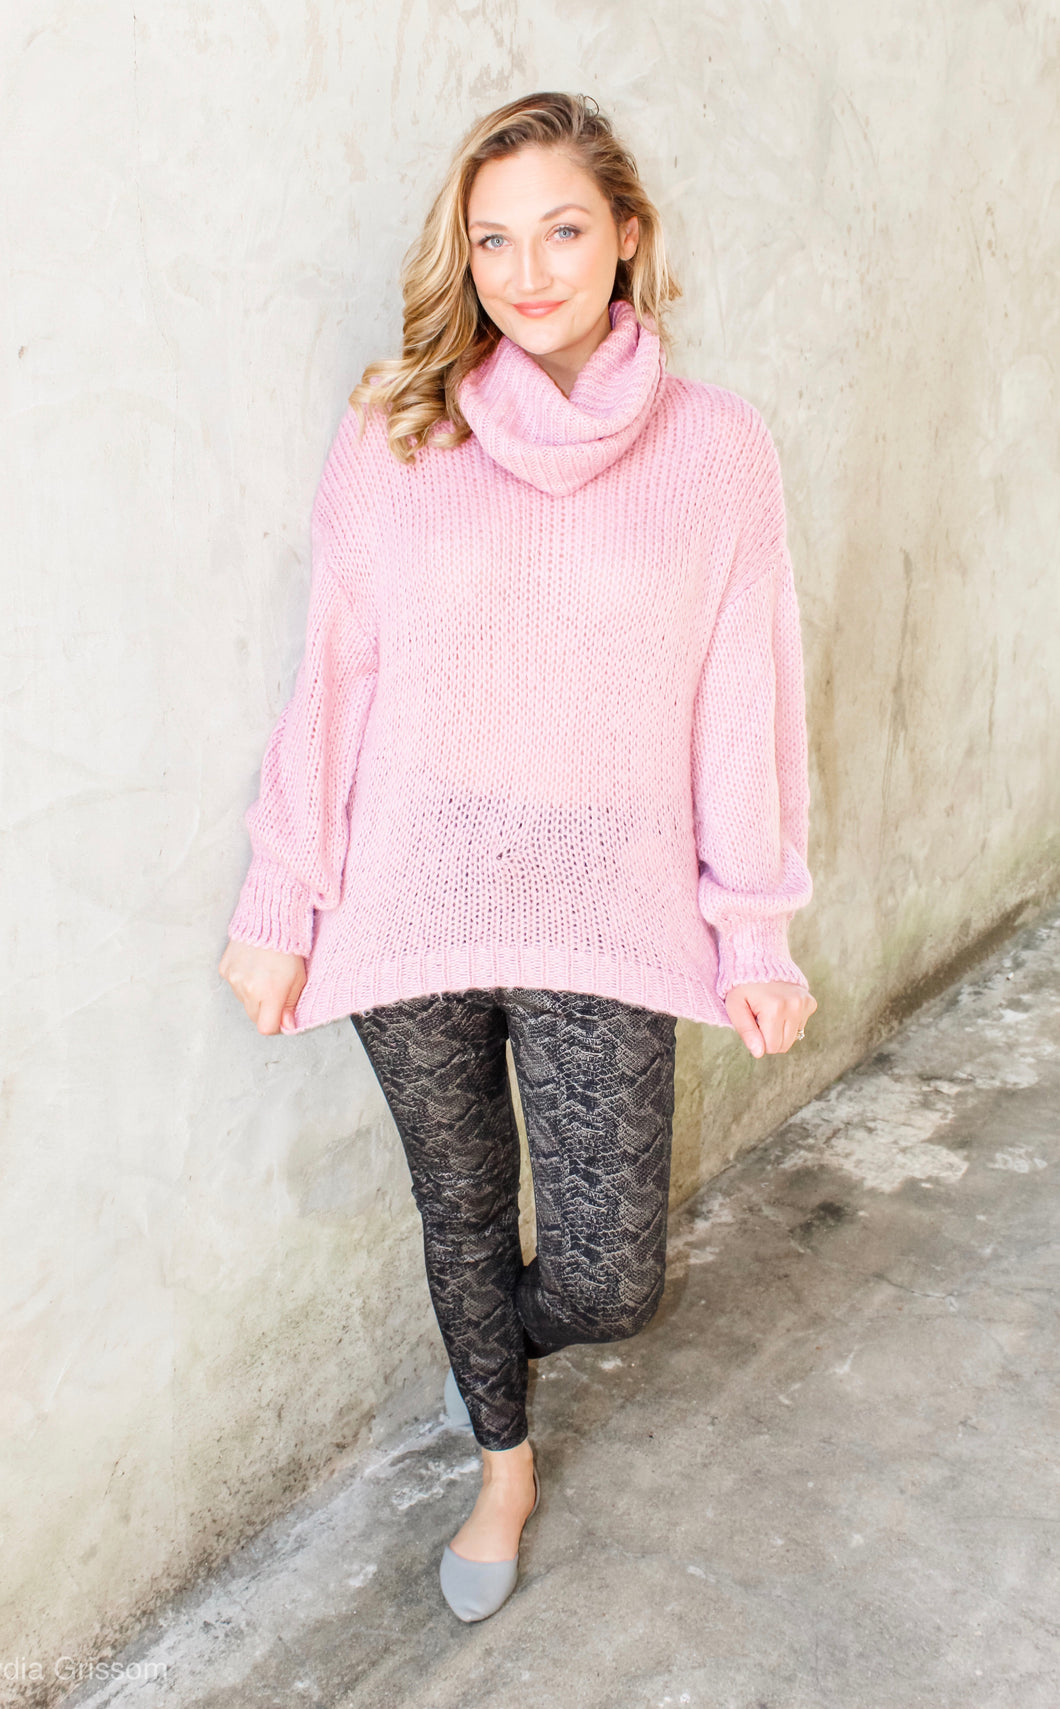 Heavenly Dusty pink turtleneck sweater